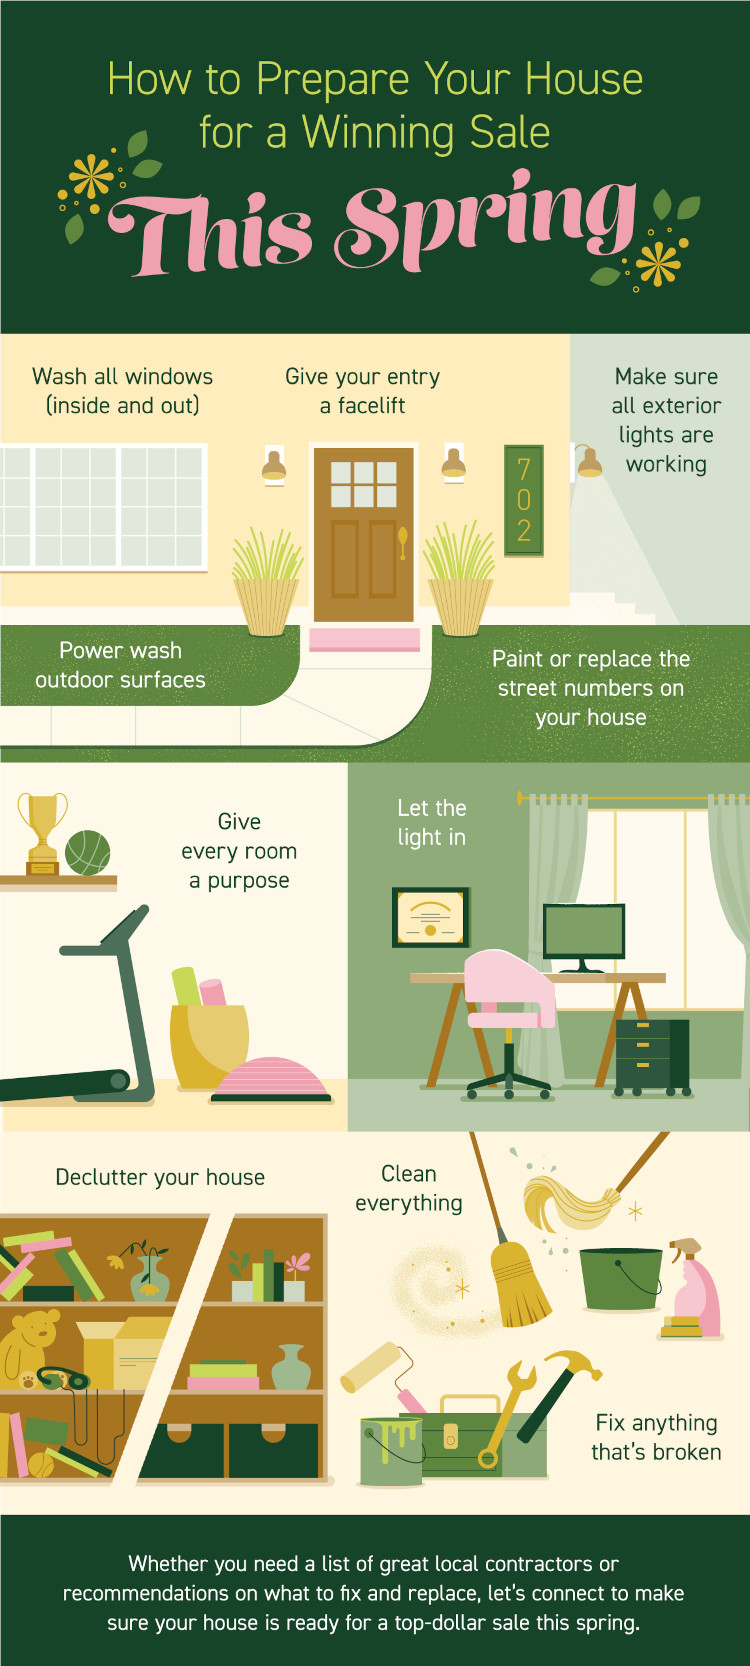 Get your house ready to sell with these tips from a real estate infographic.